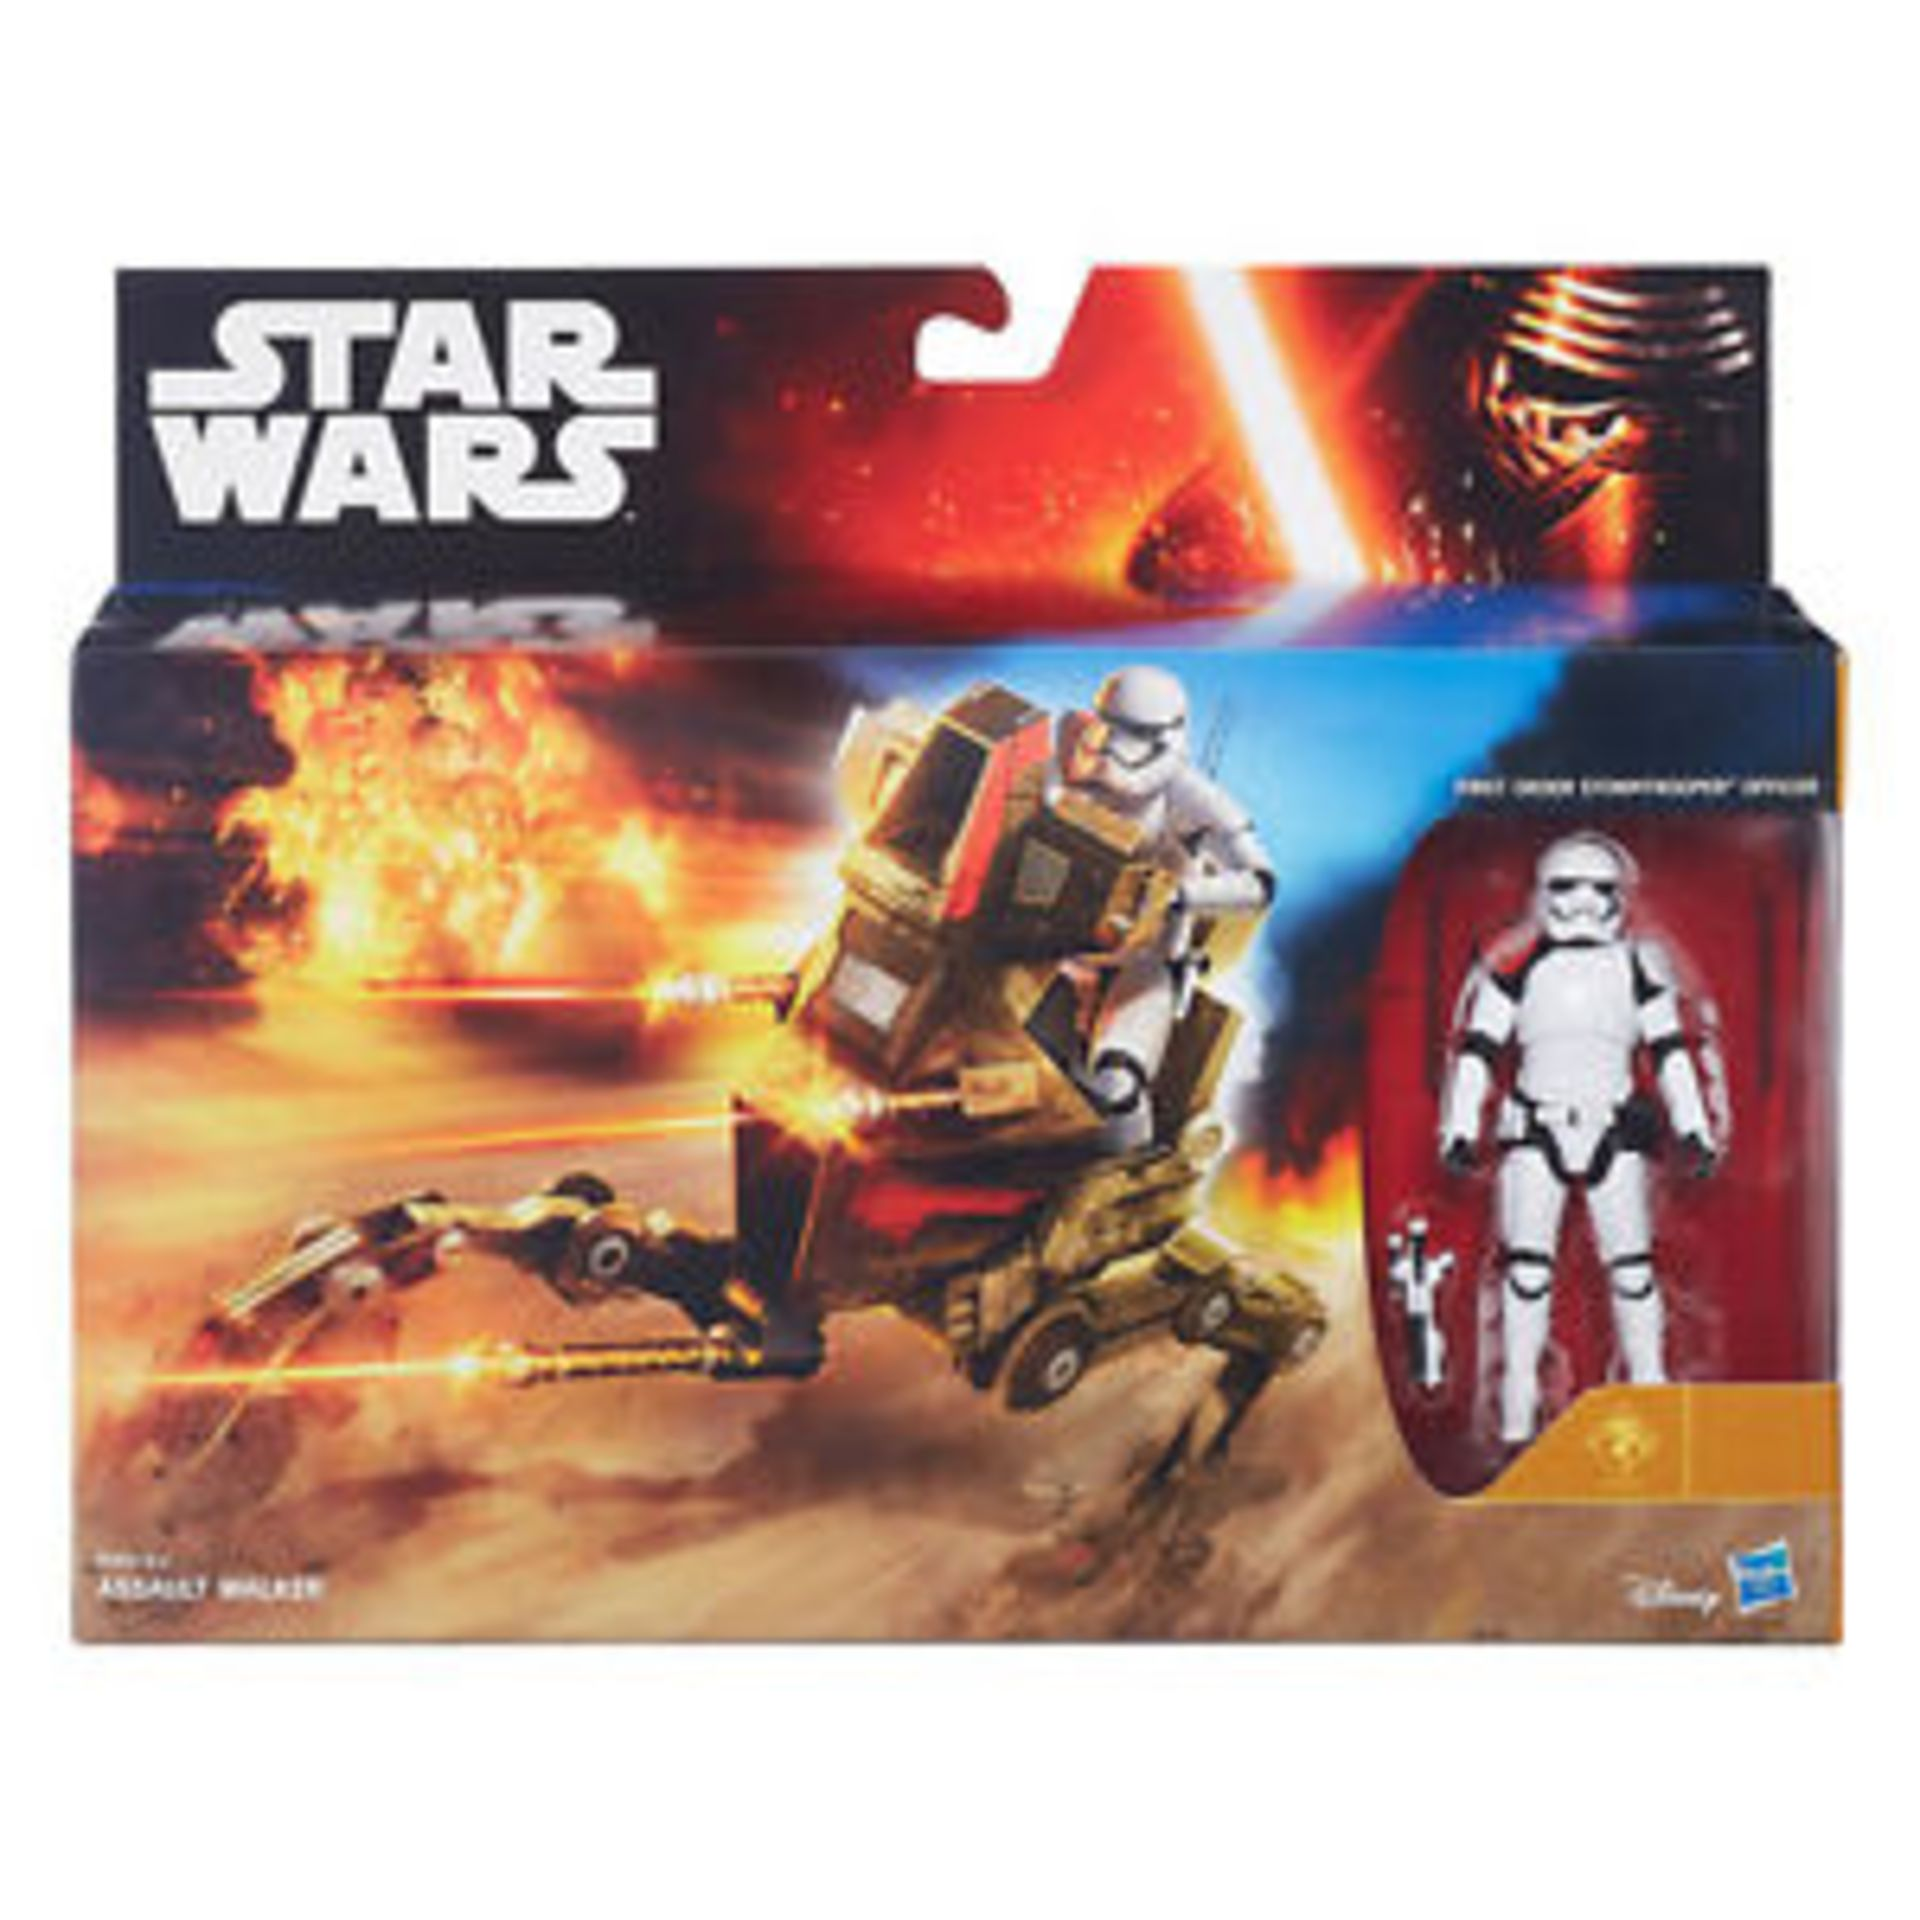 Lot 12405 - V Brand New Star Wars The Force Awakens Desert Assault Walker - Online Price £32.99 (My Geek Box)